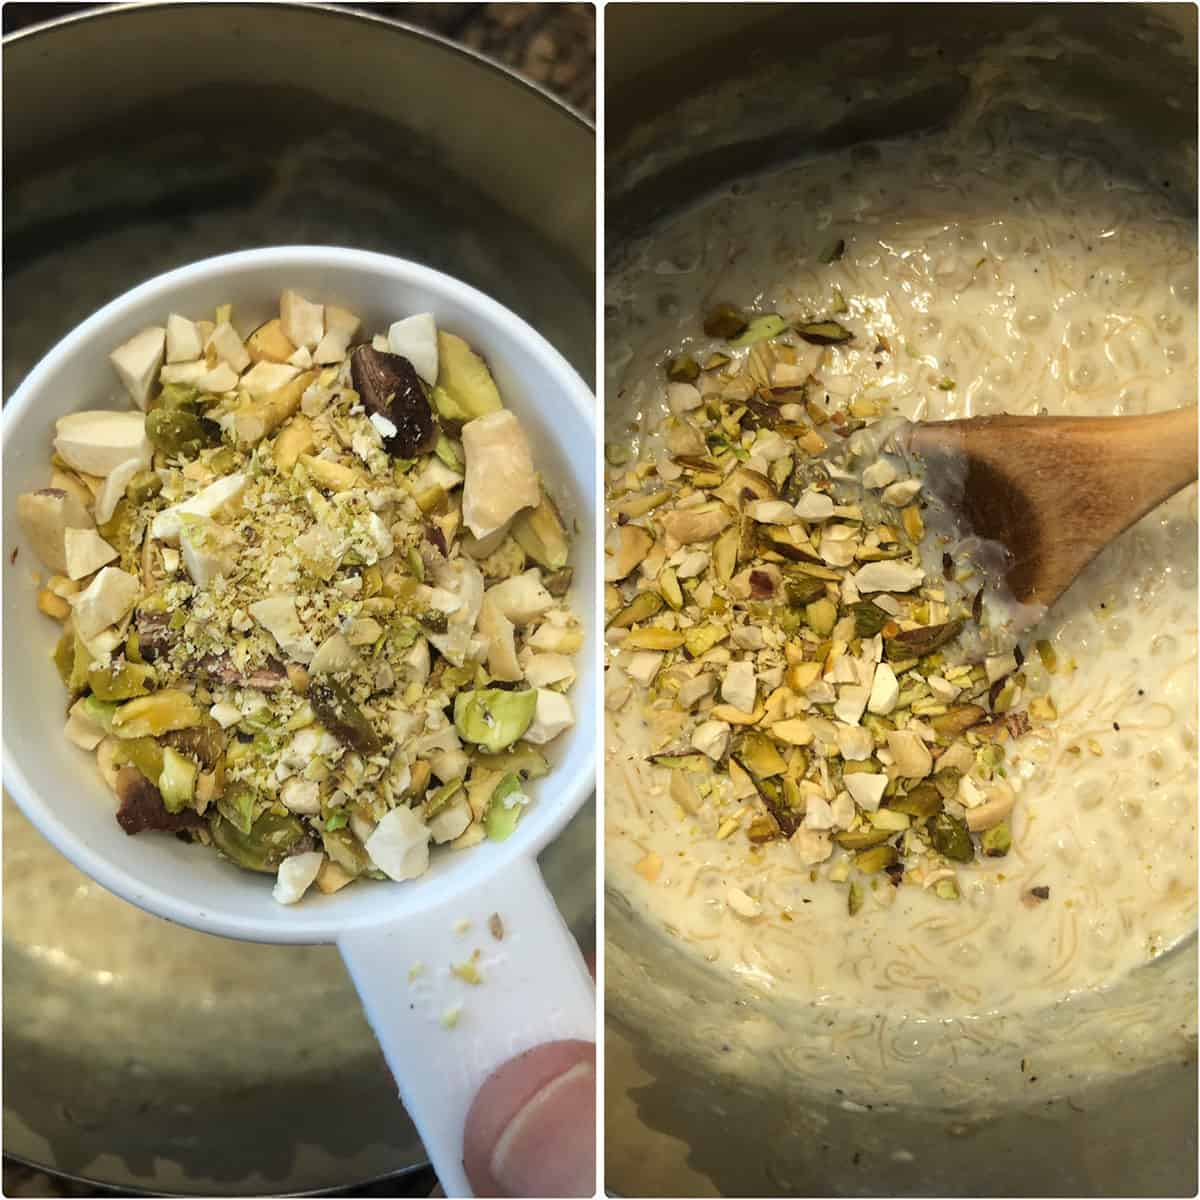 Chopped nuts being added to Sago kheer